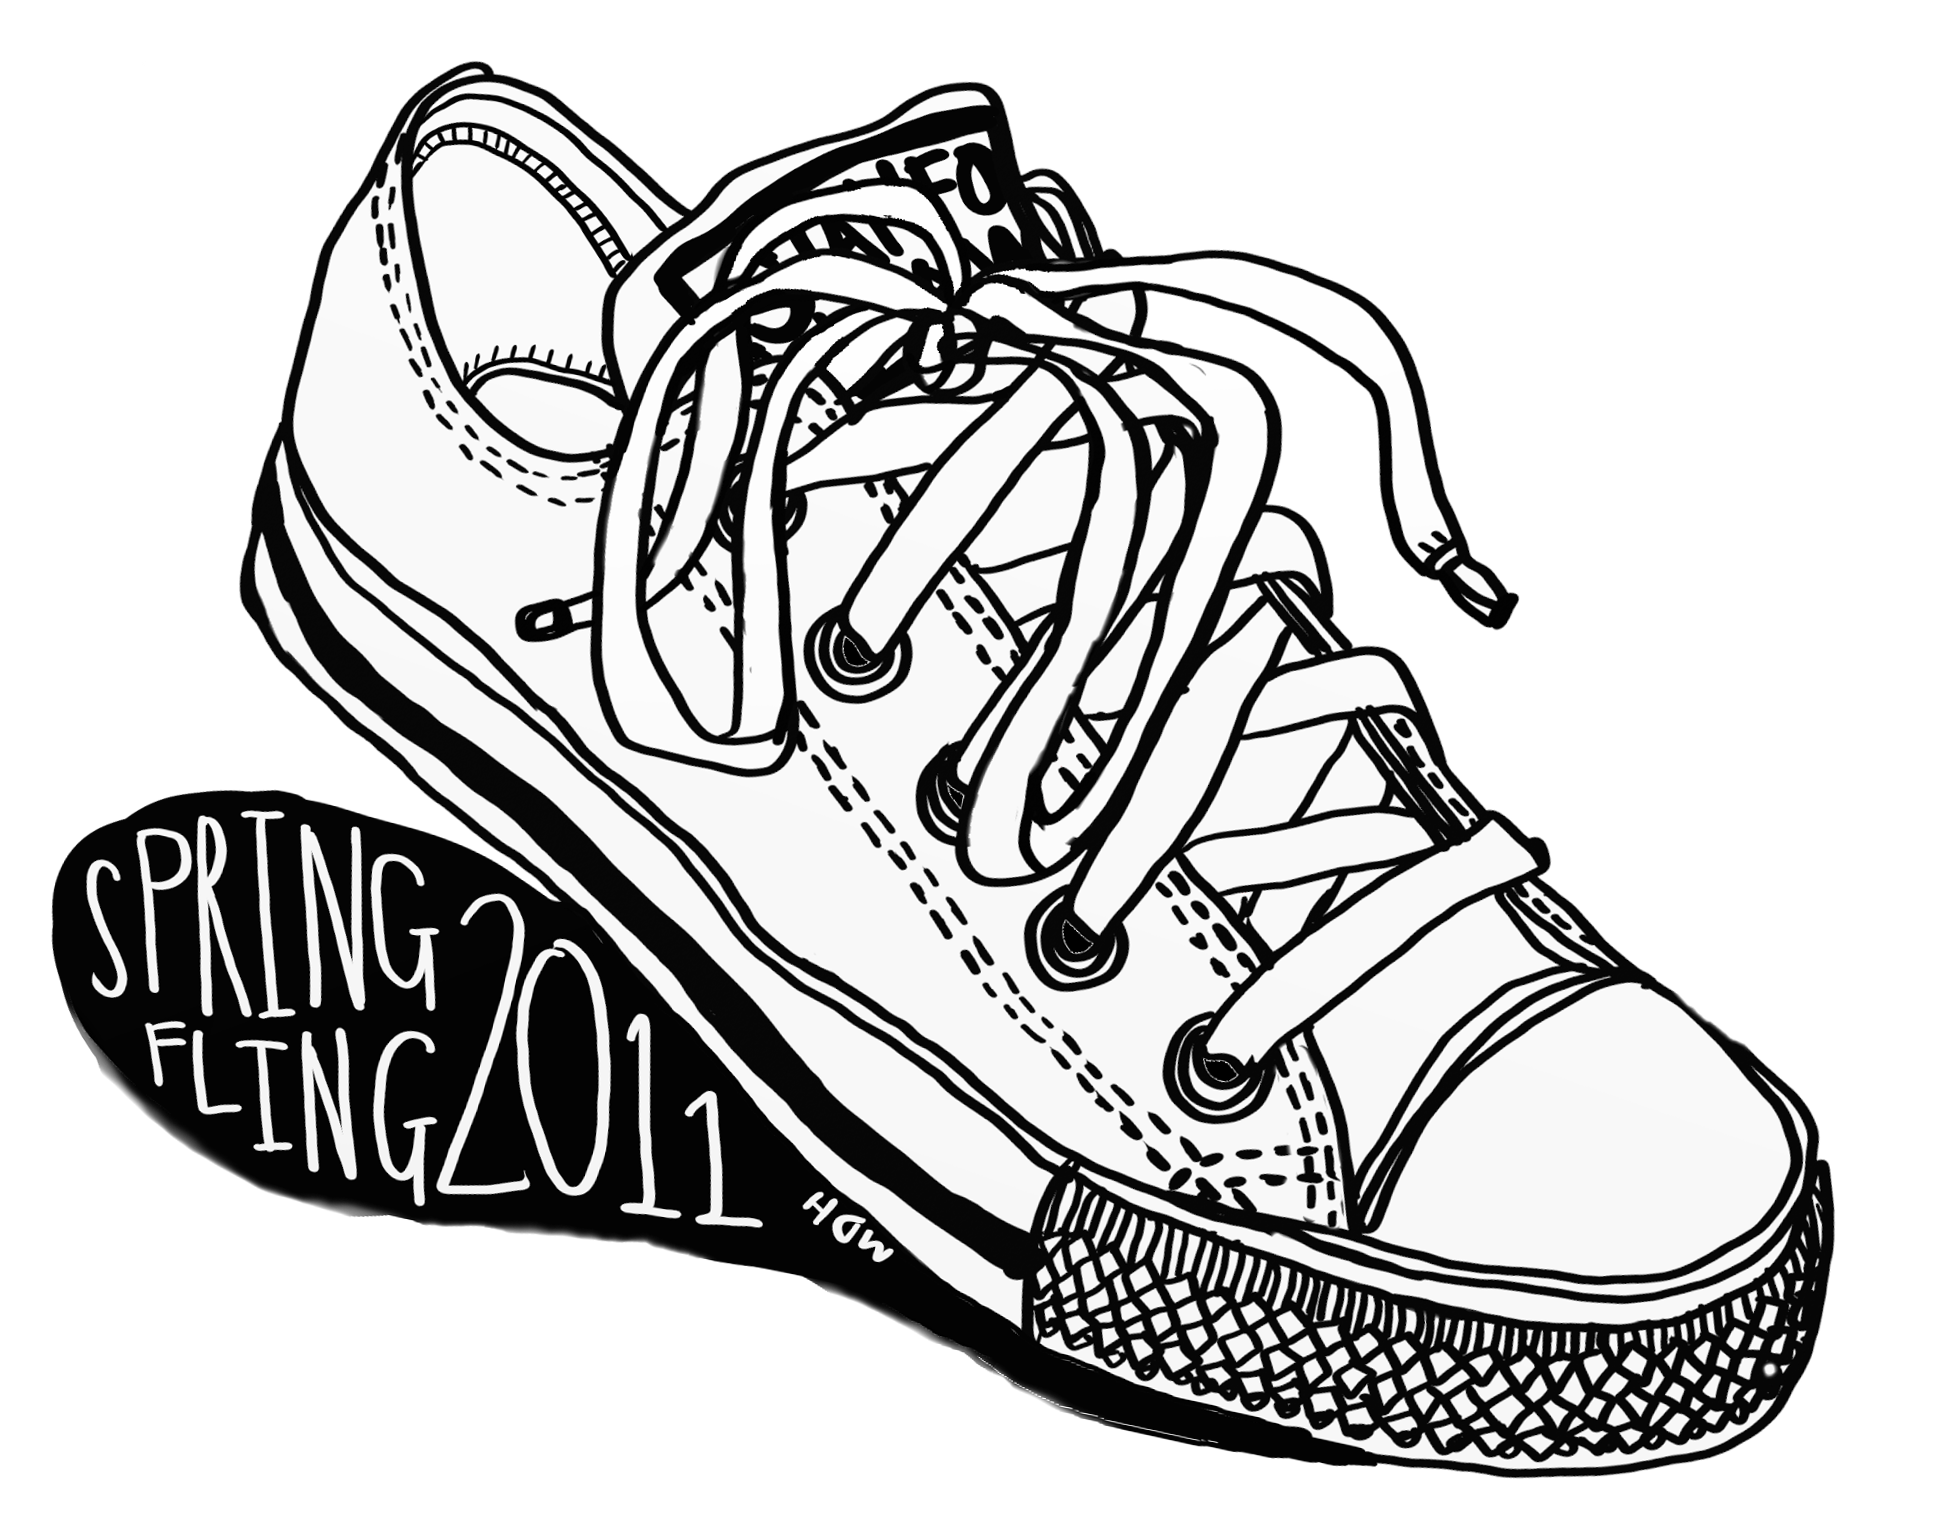 Drawn converse sketch For Sneaker A the t